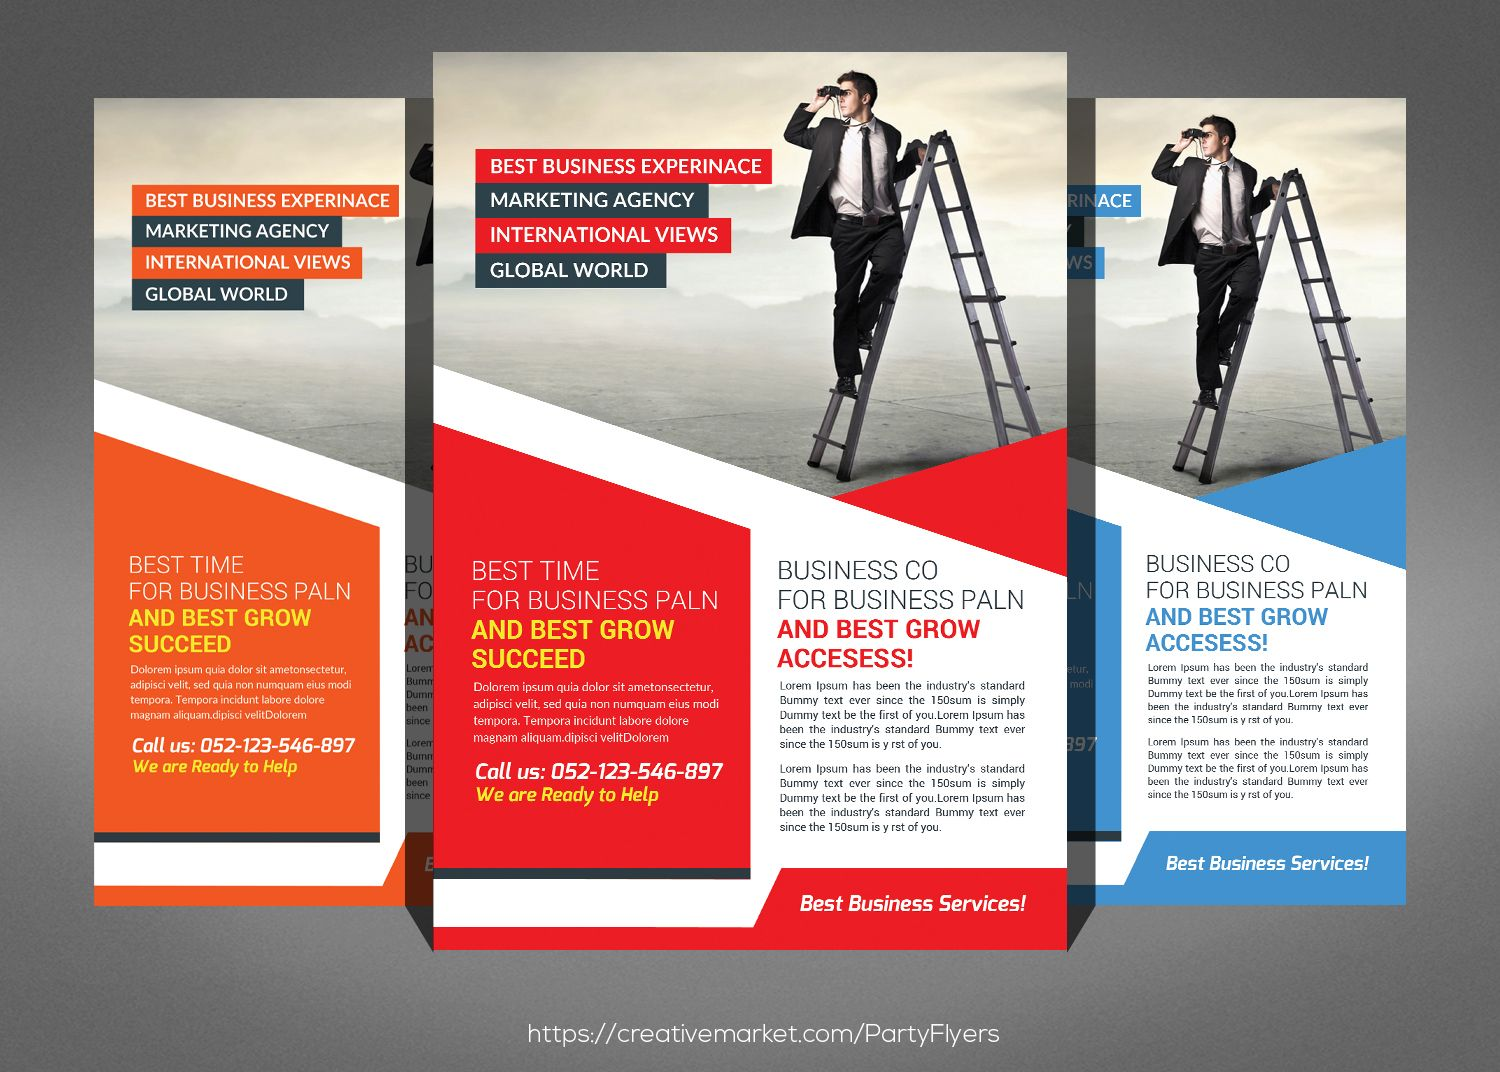 Staffing & Recruitment Agency Flyer by Party Flyers on